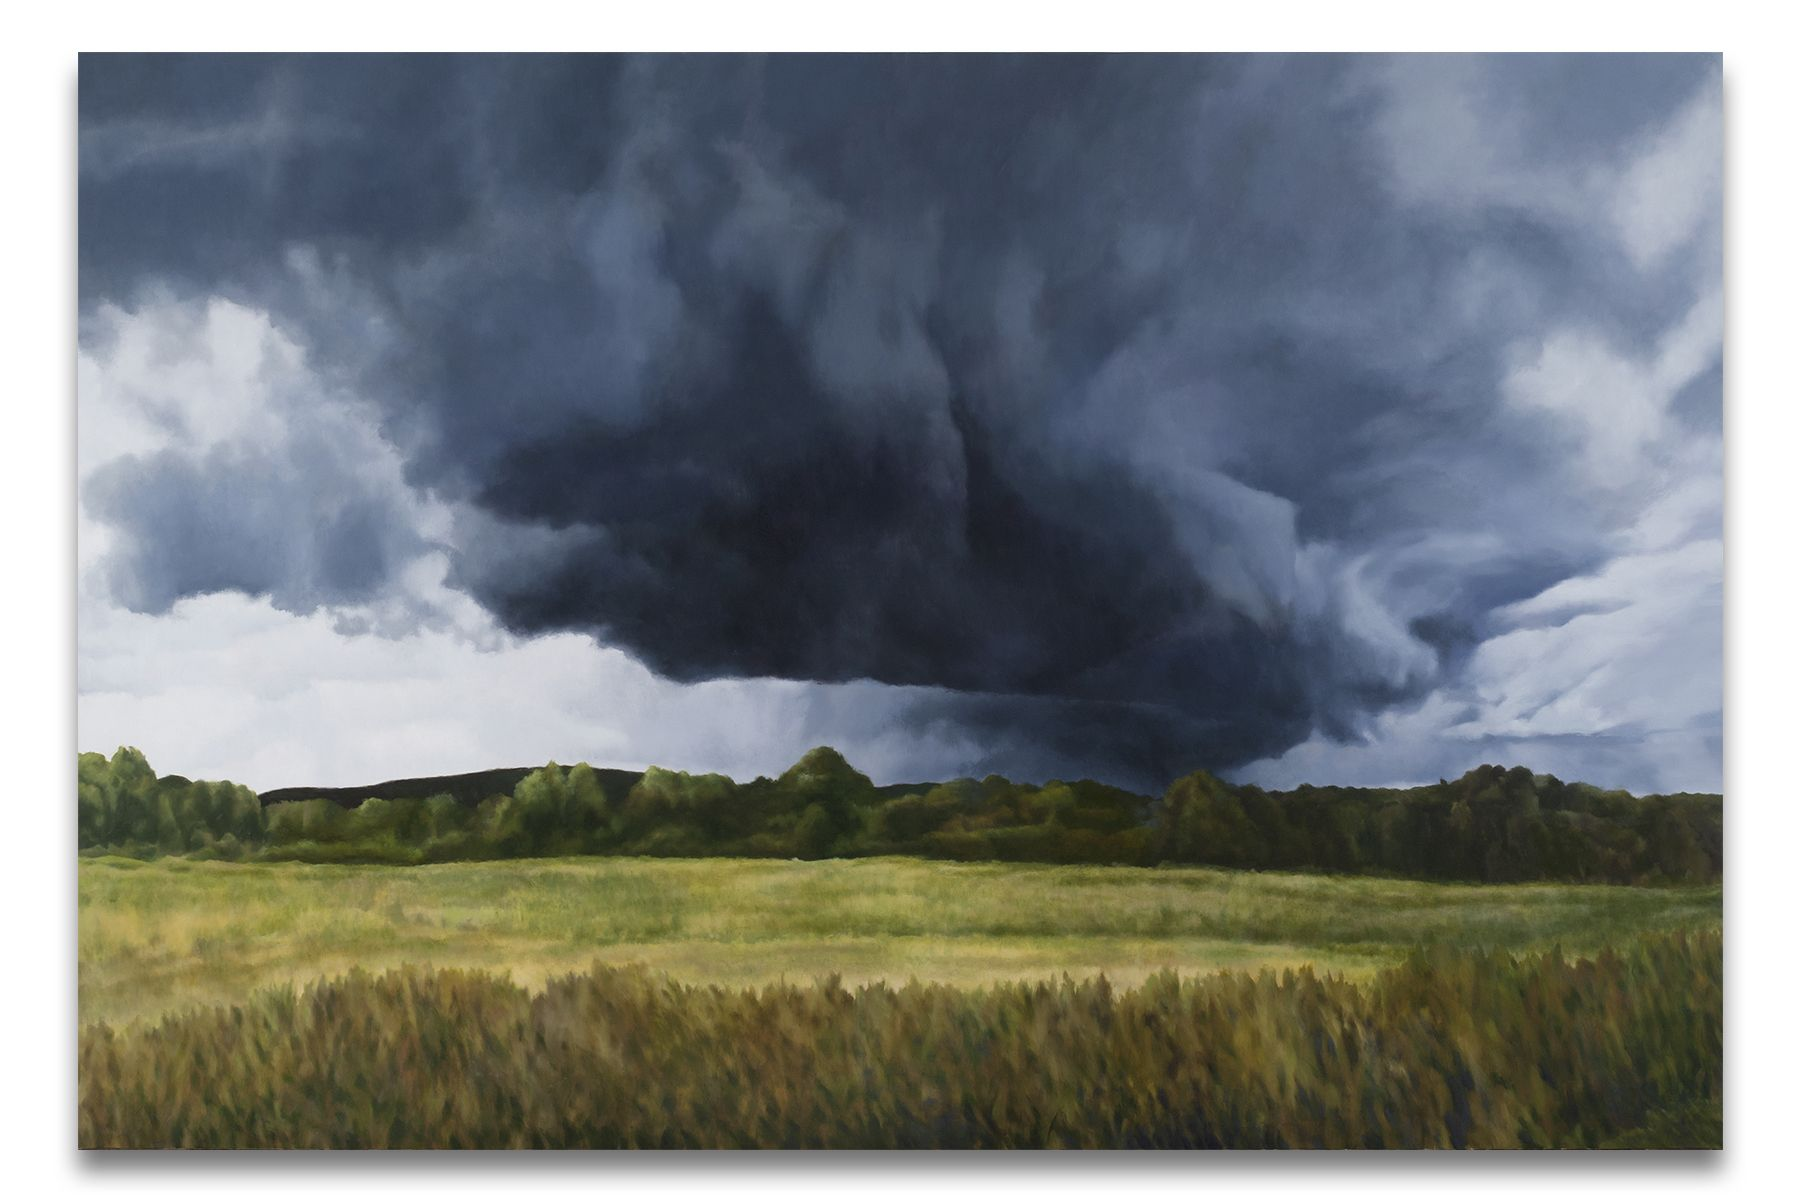 Cloud Bringing Night, 2015, Oil on linen,72 x 108 inches,182.9 x 274.3 cm, MMG#30406